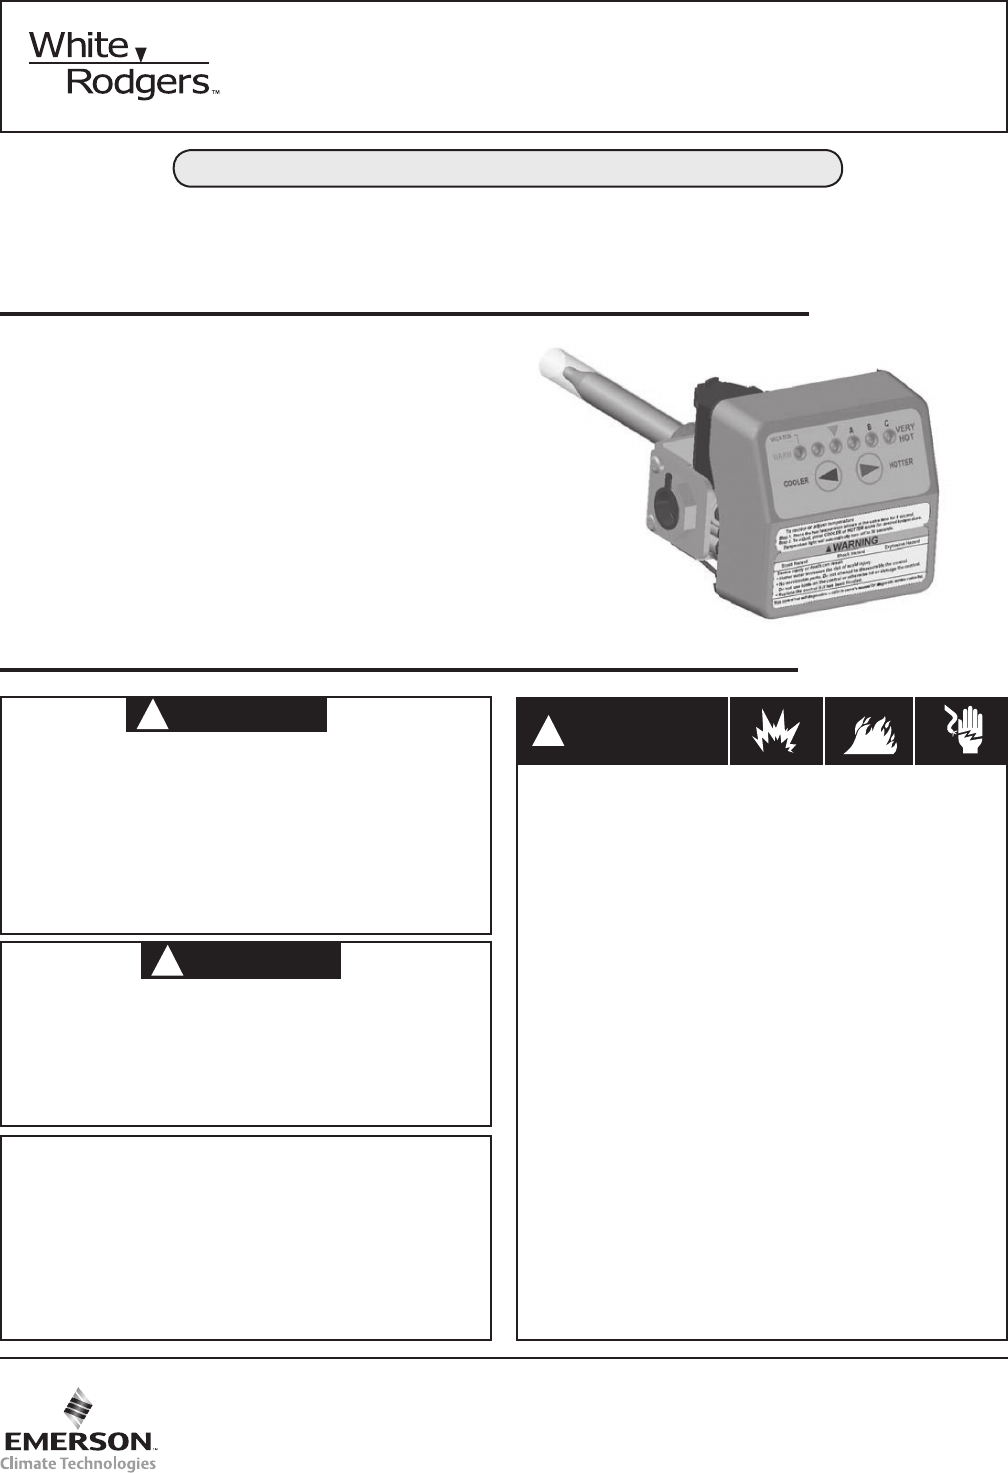 Thermostat Wiring Diagram Further White Rodgers Thermostat Wiring